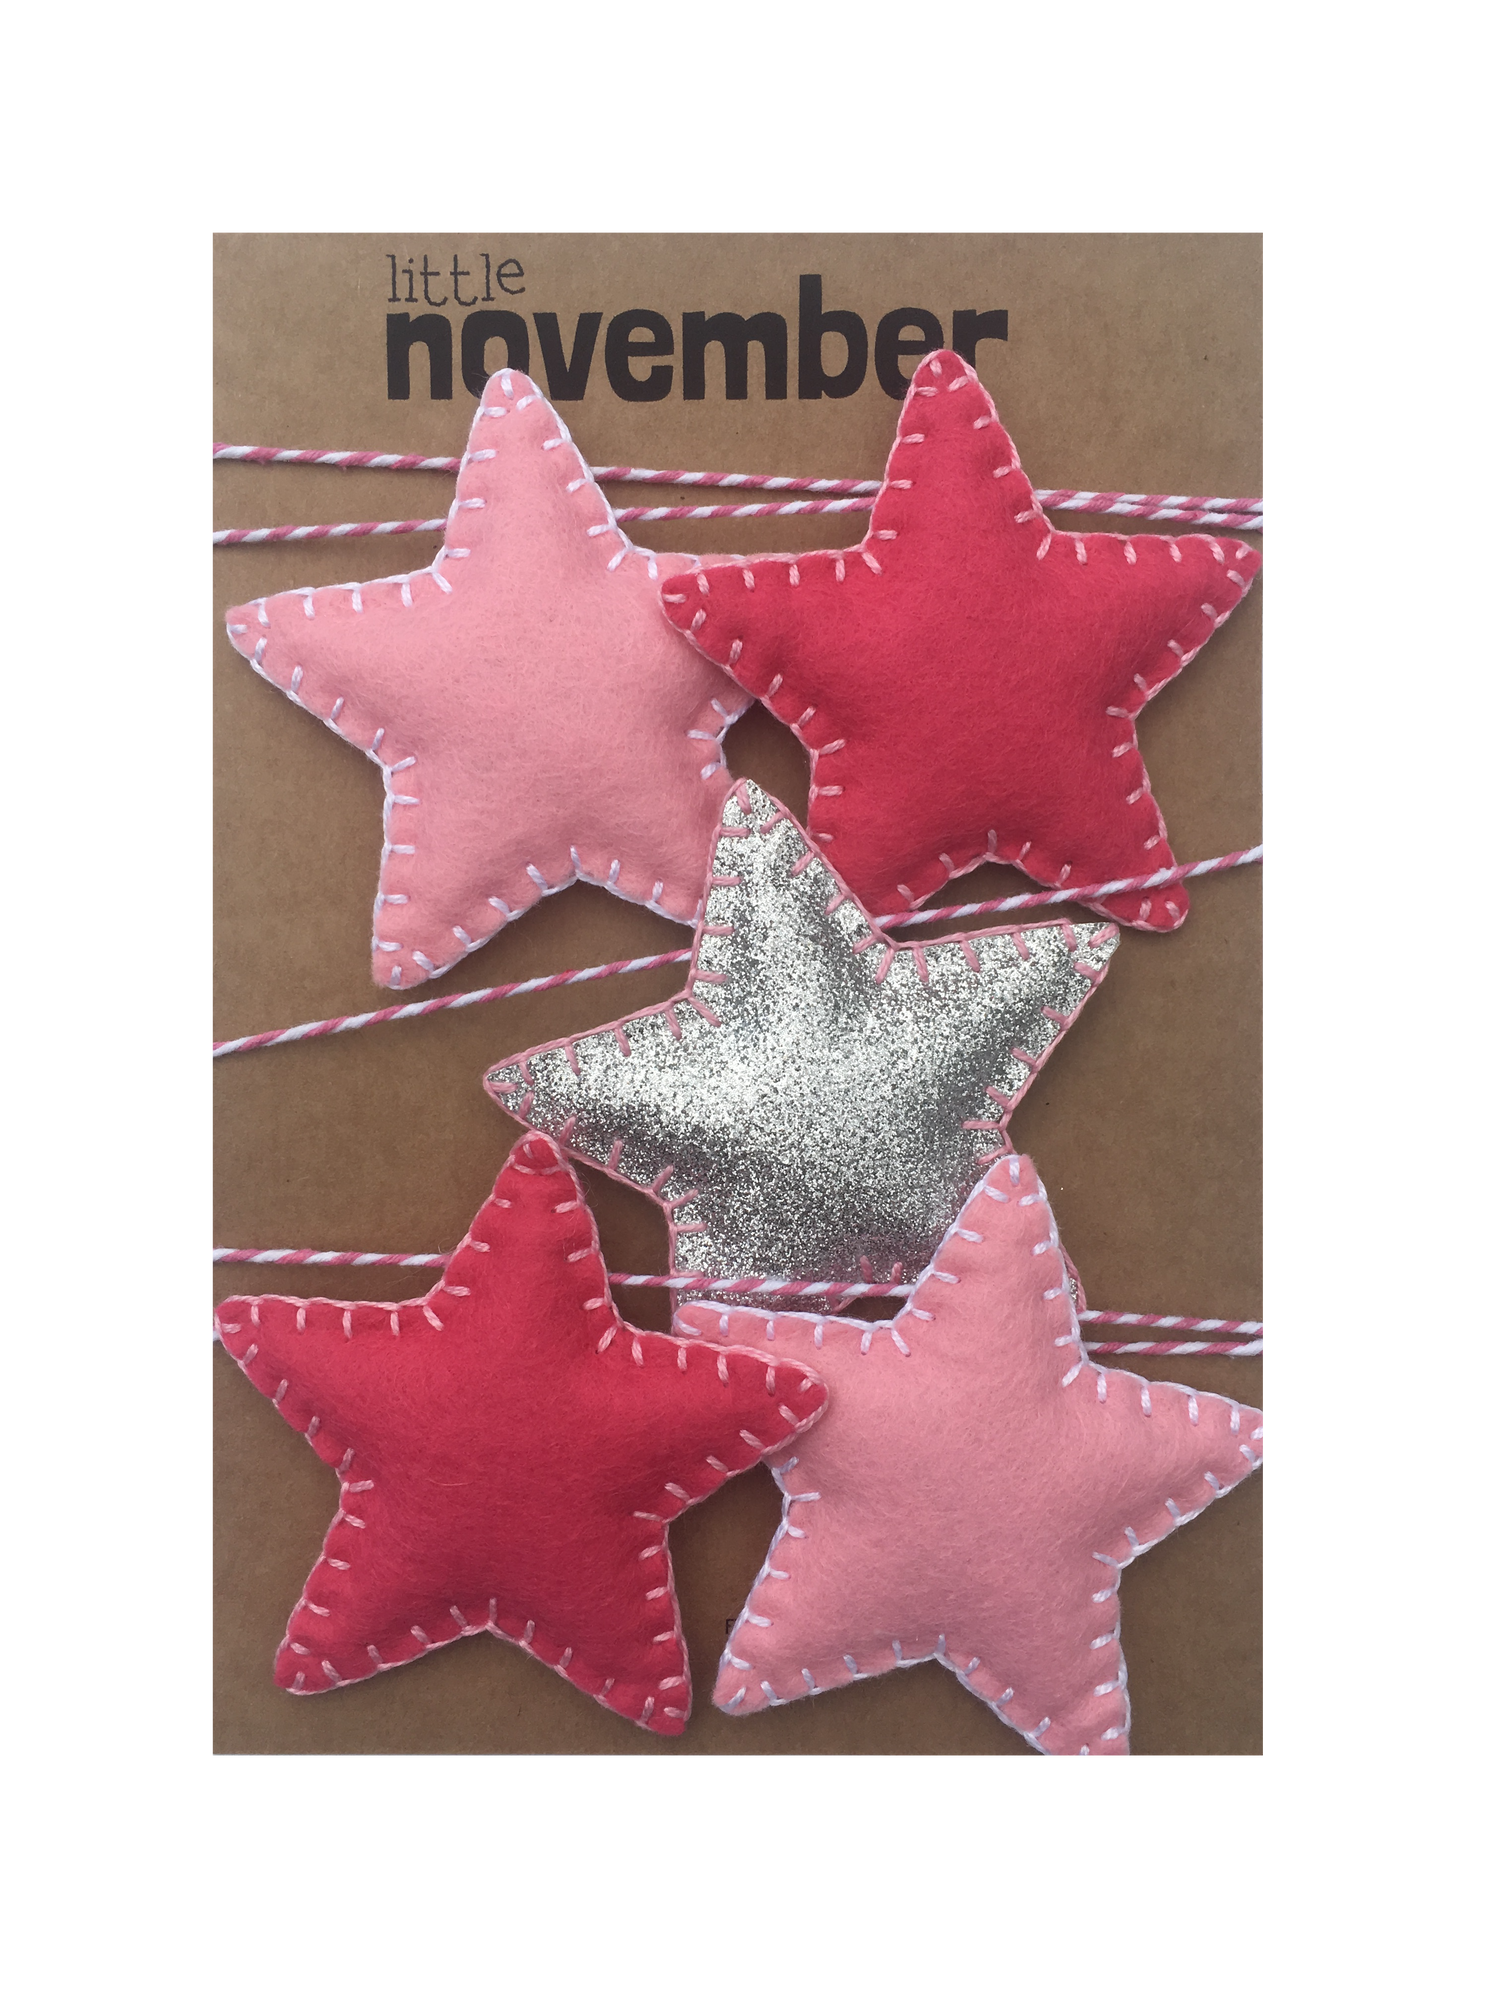 Image of Pink Star Garland by Little November